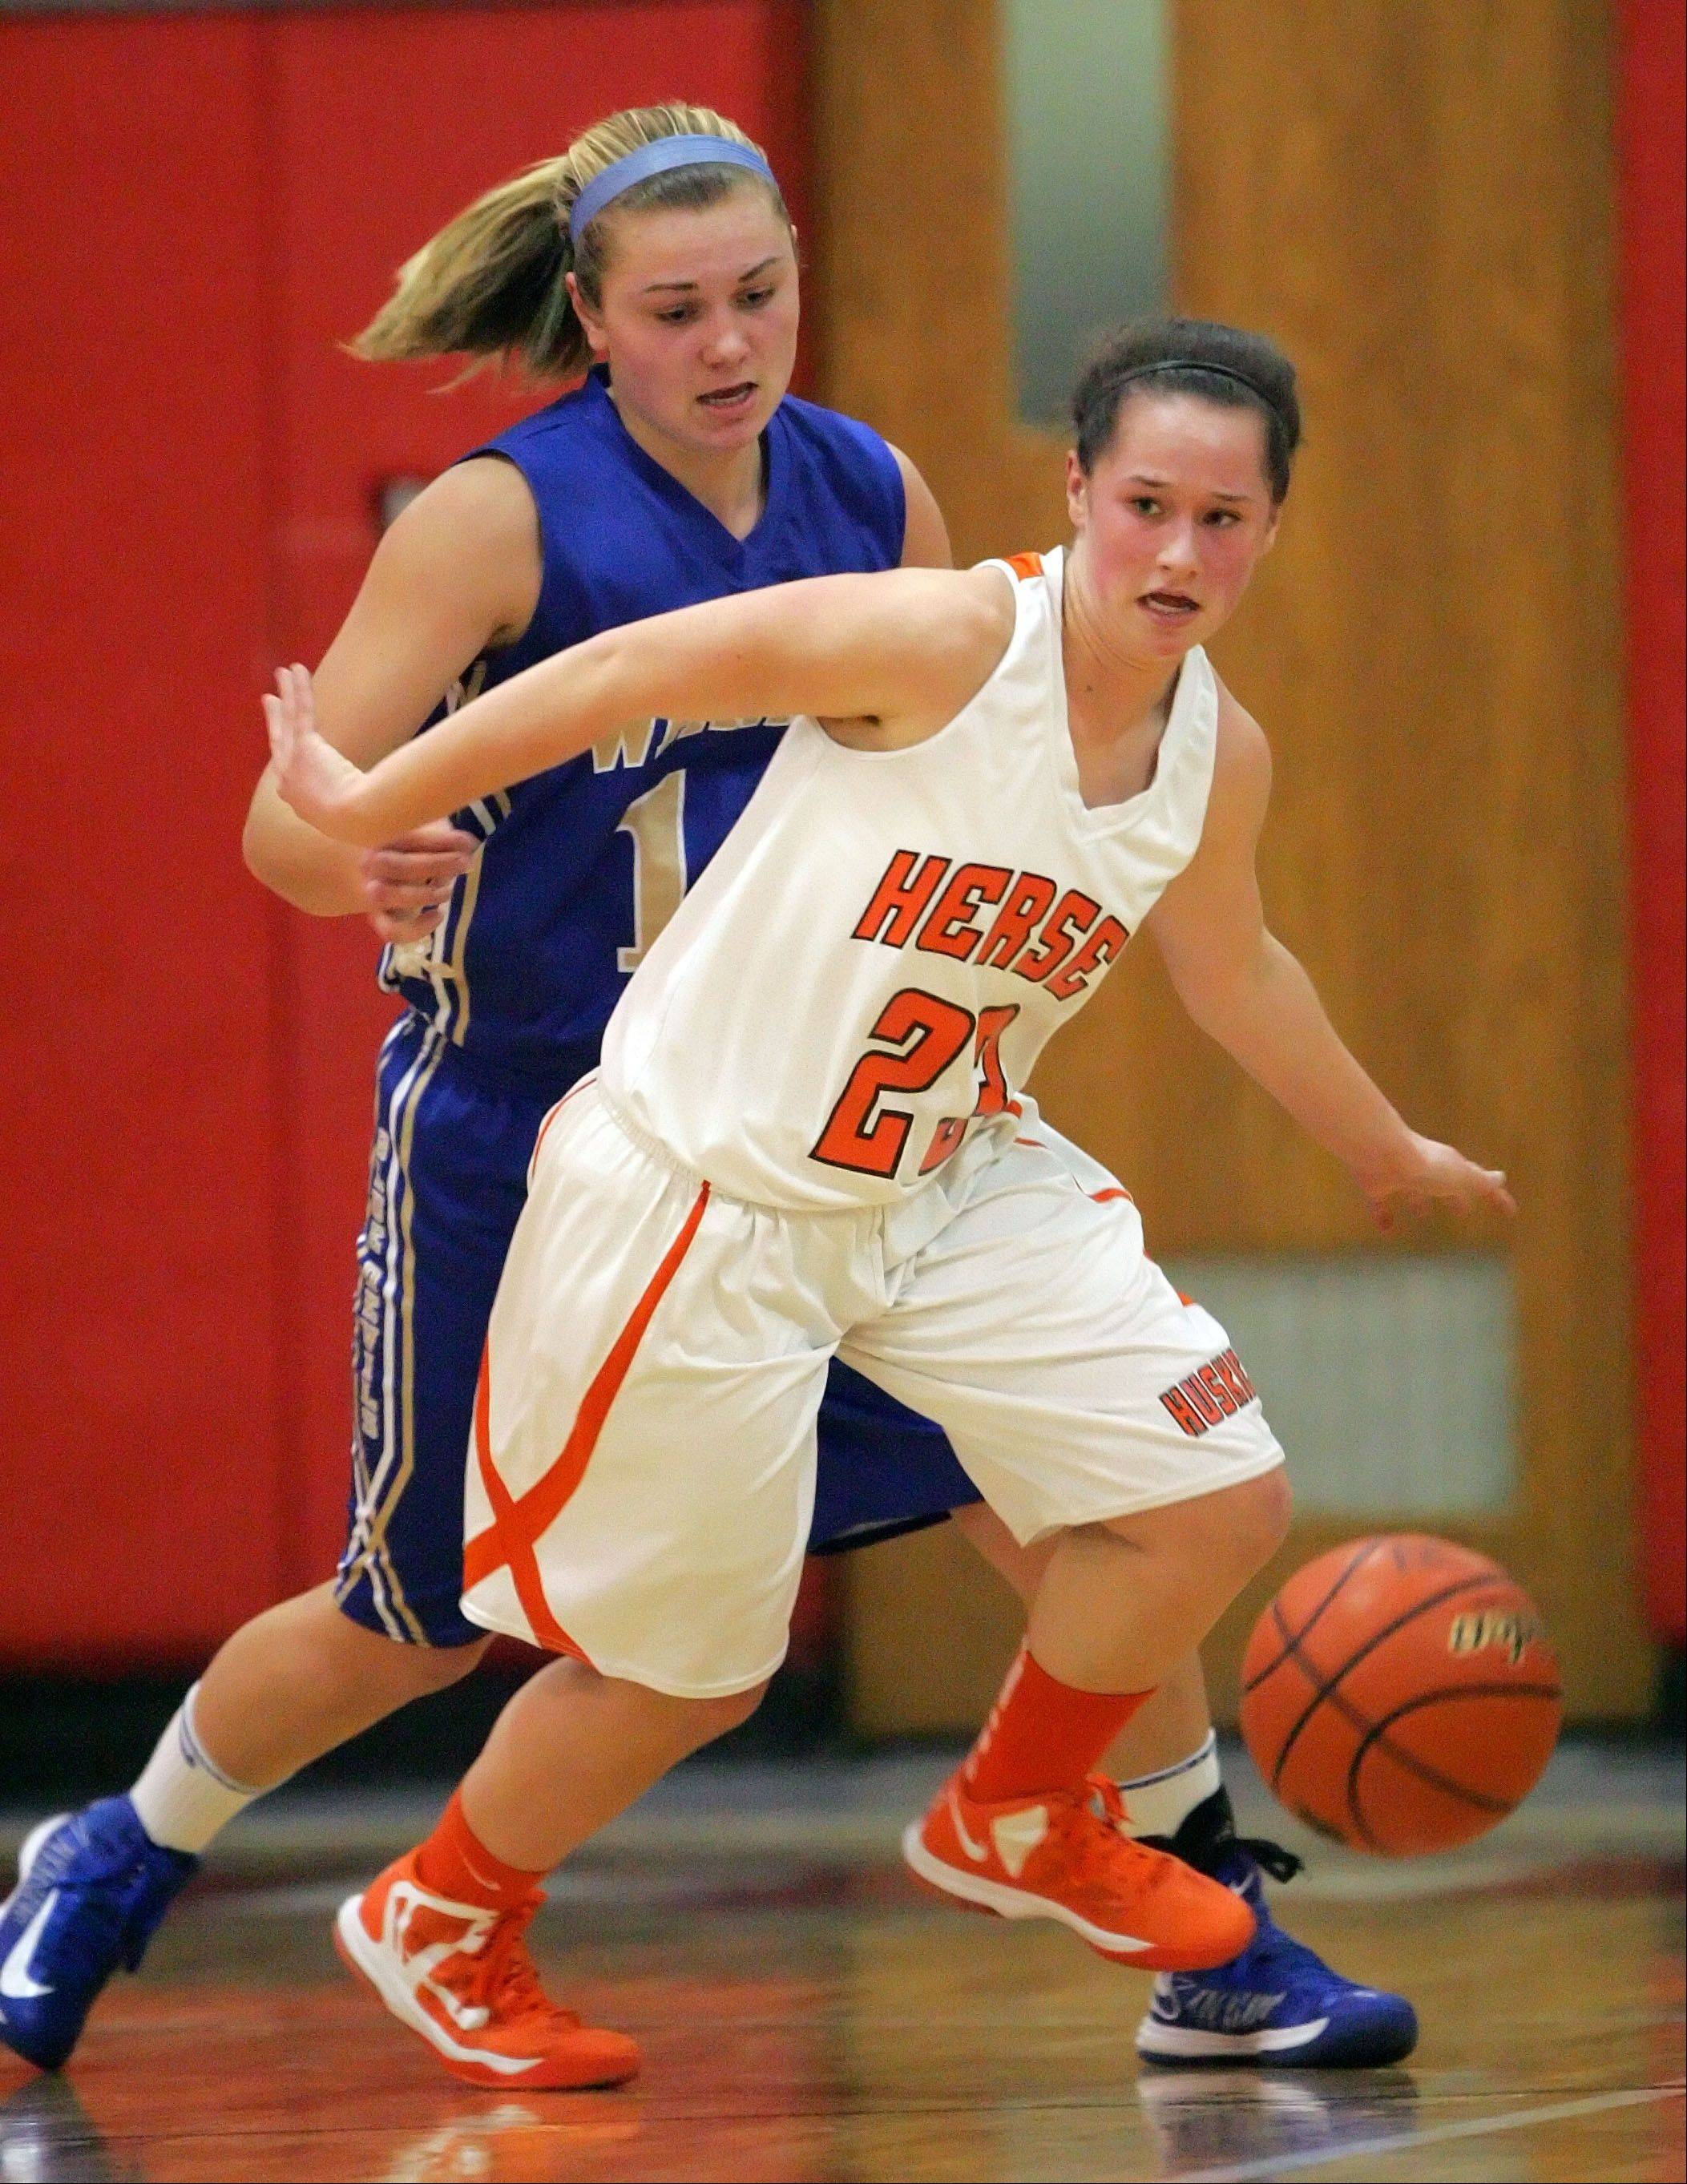 Warren's Kristen O'Brien, left and Hersey's Casey Weyhrich battle for a loose ball.